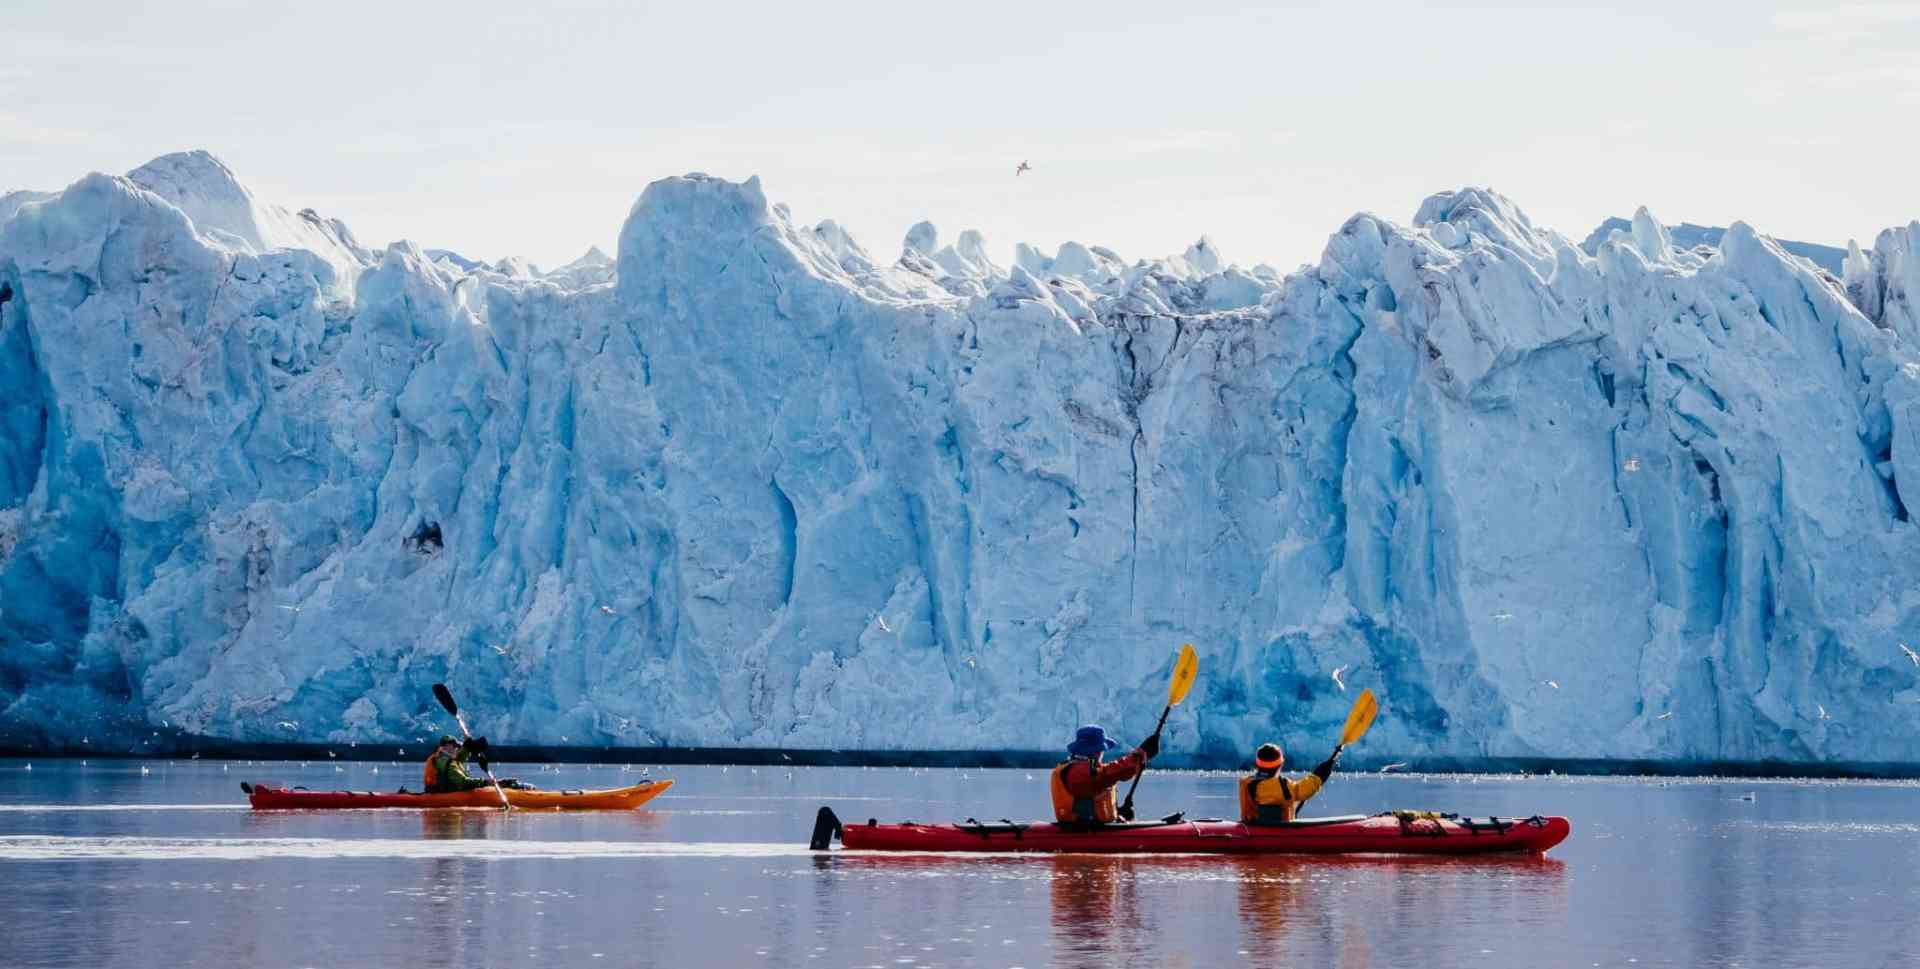 Exploring the icescapes, East Greenland by Aurora Expeditions